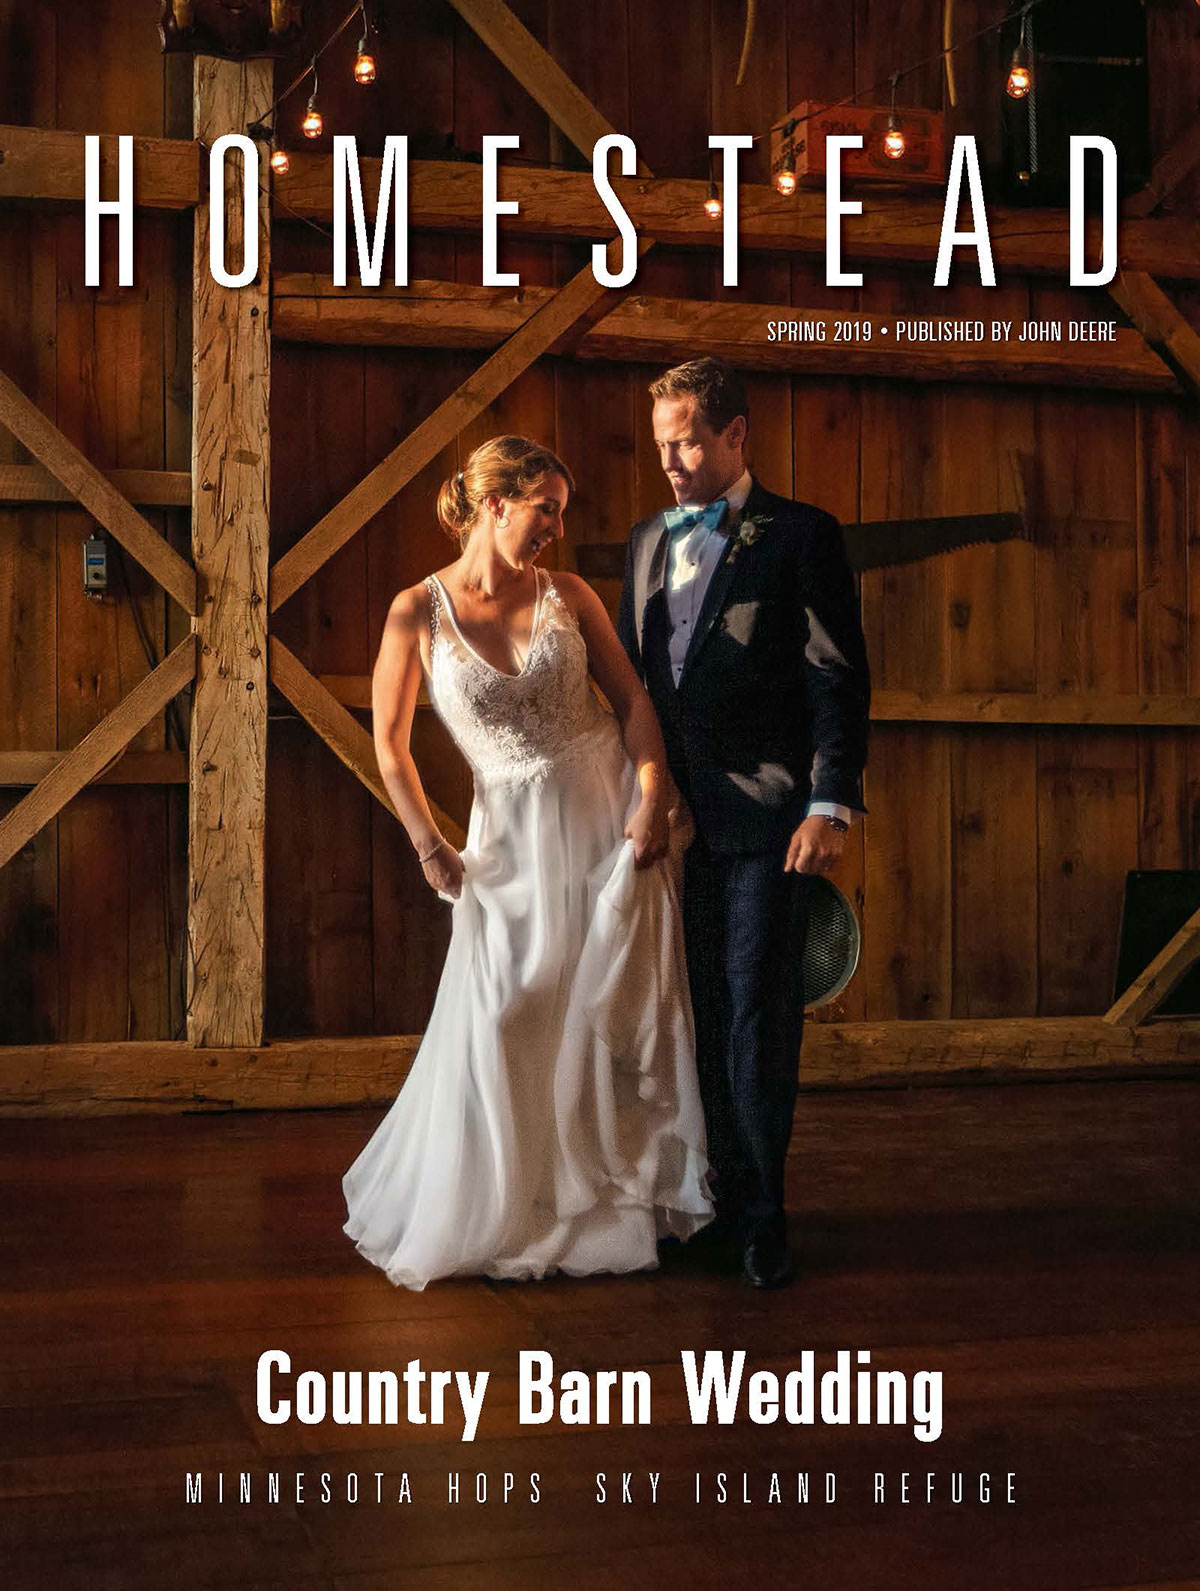 Homestead - Spring 2019 Issue